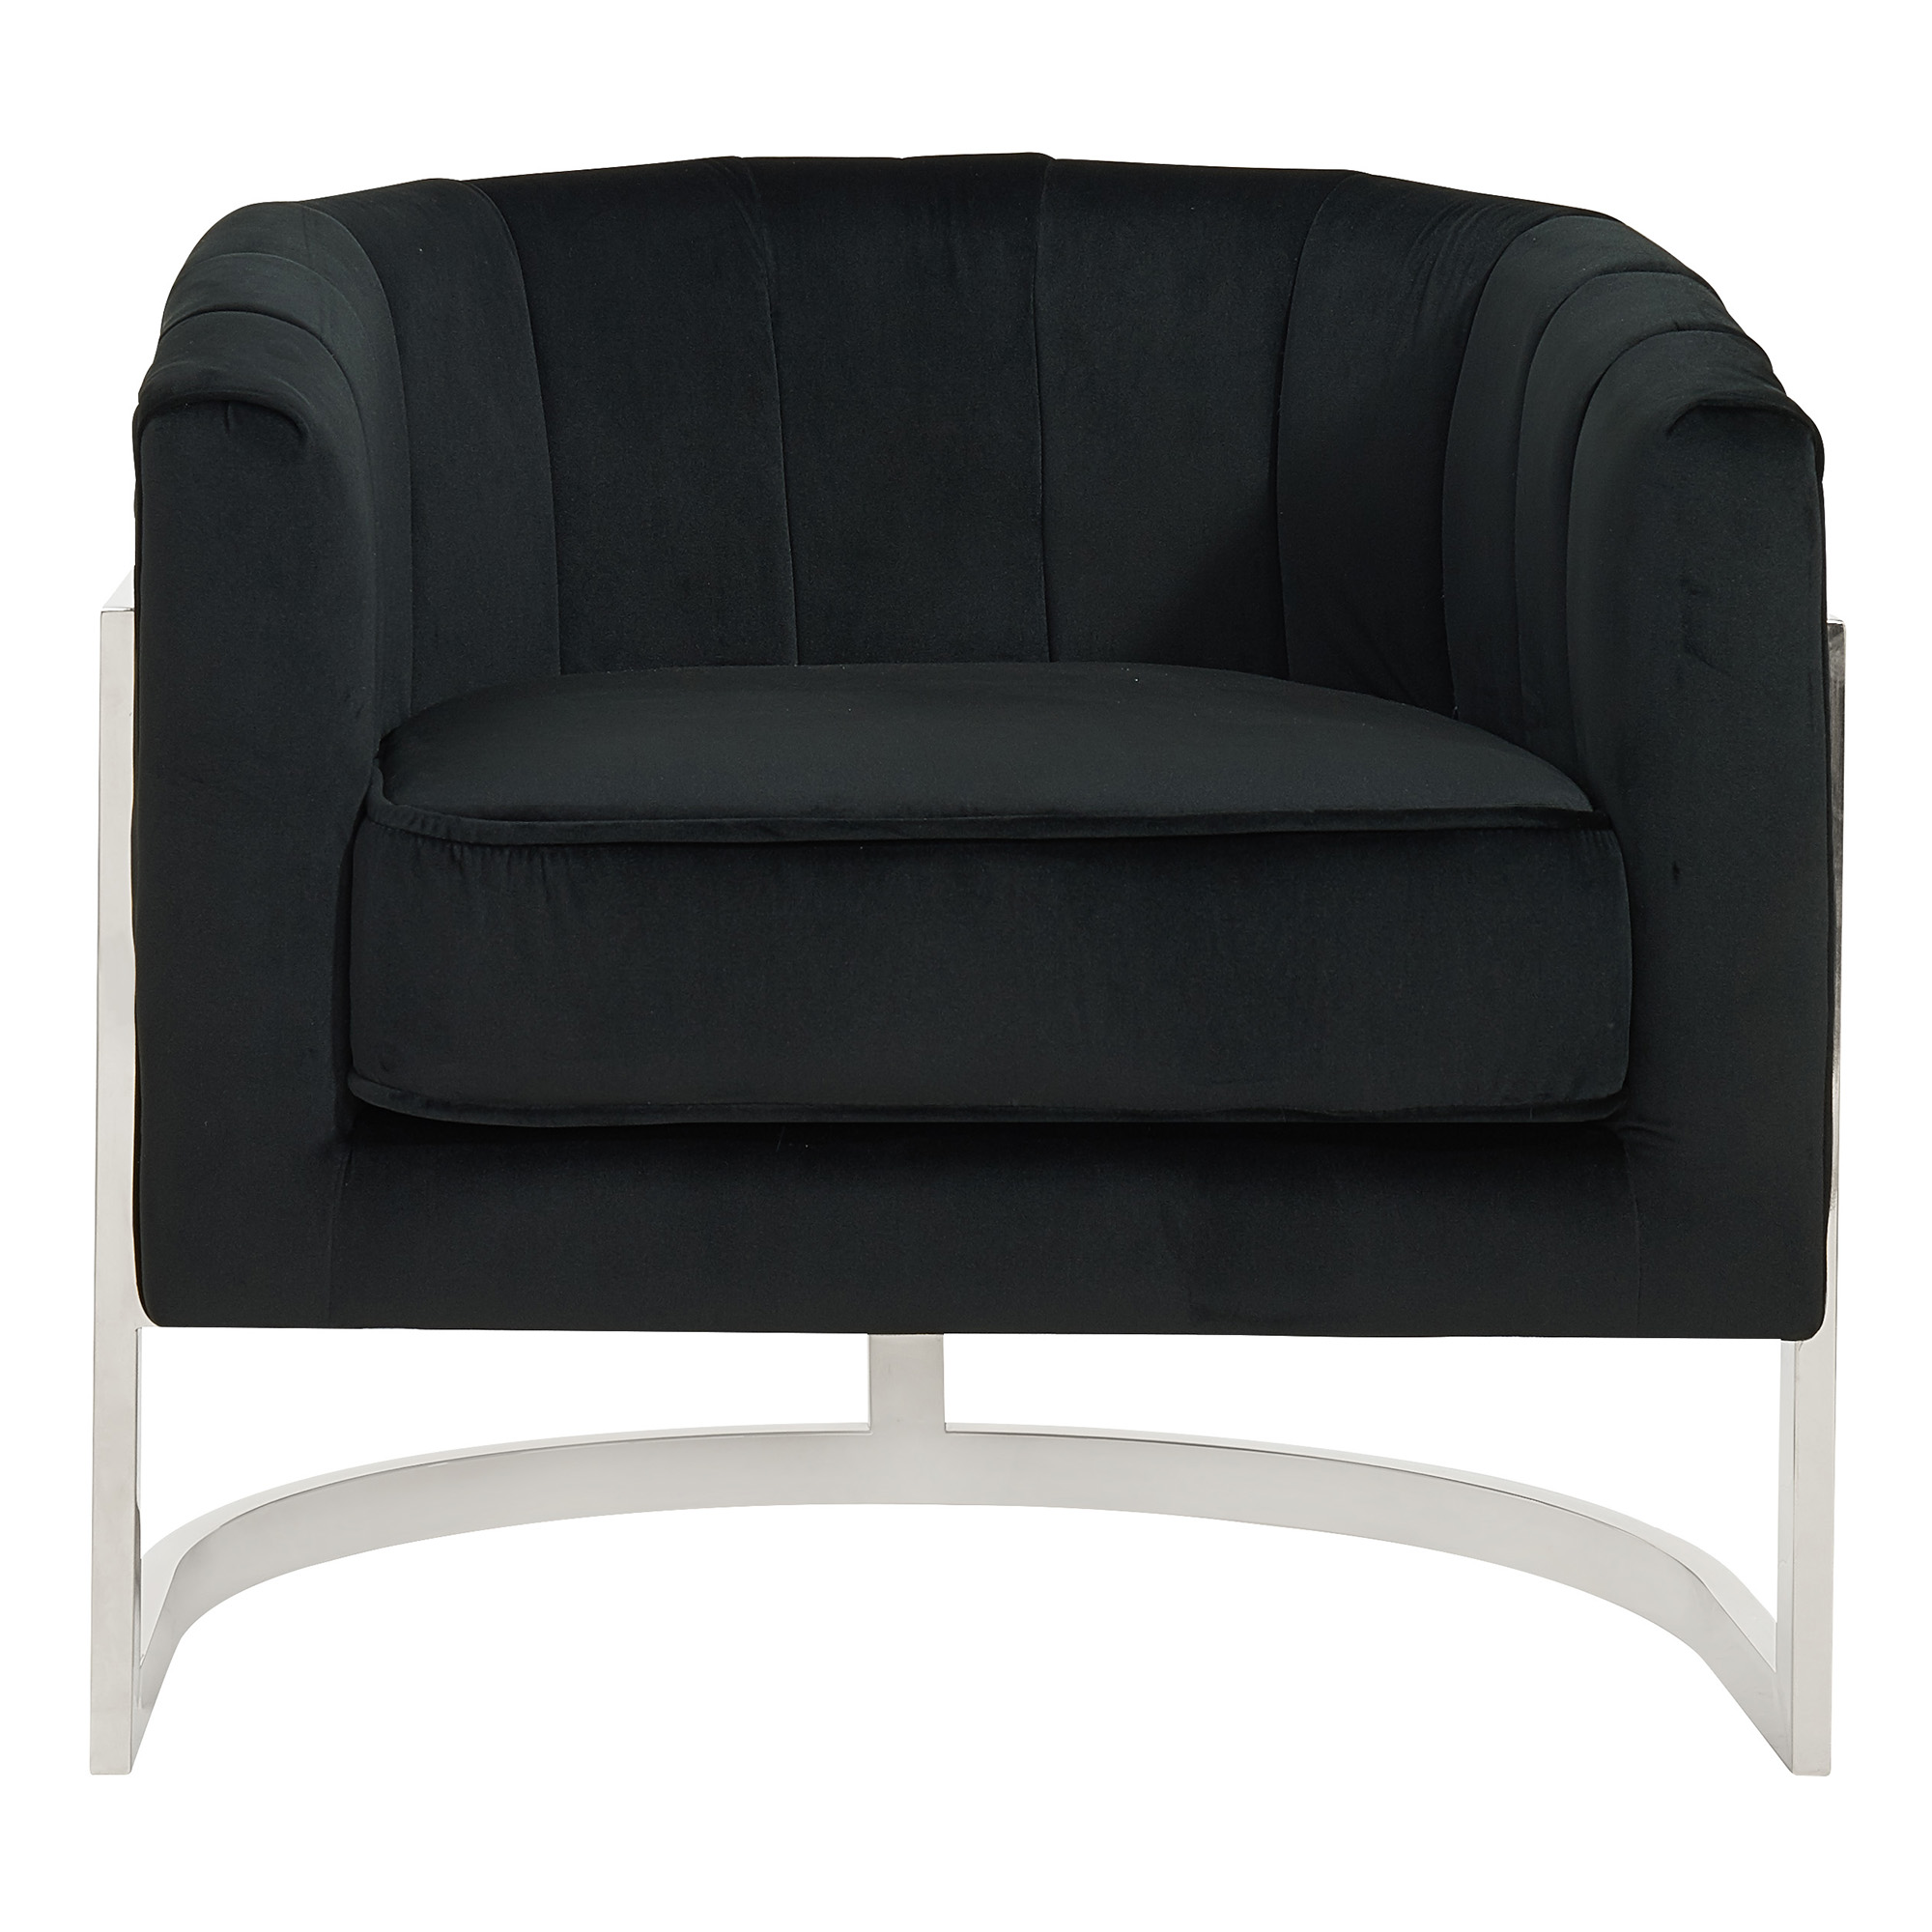 TARRA-ACCENT CHAIR-BLACK, 841173029173, Accent Chairs by Midha Furniture to Brampton, Mississauga, Etobicoke, Toronto, Scraborough, Caledon, Oakville, Markham, Ajax, Pickering, Oshawa, Richmondhill, Kitchener, Hamilton and GTA area